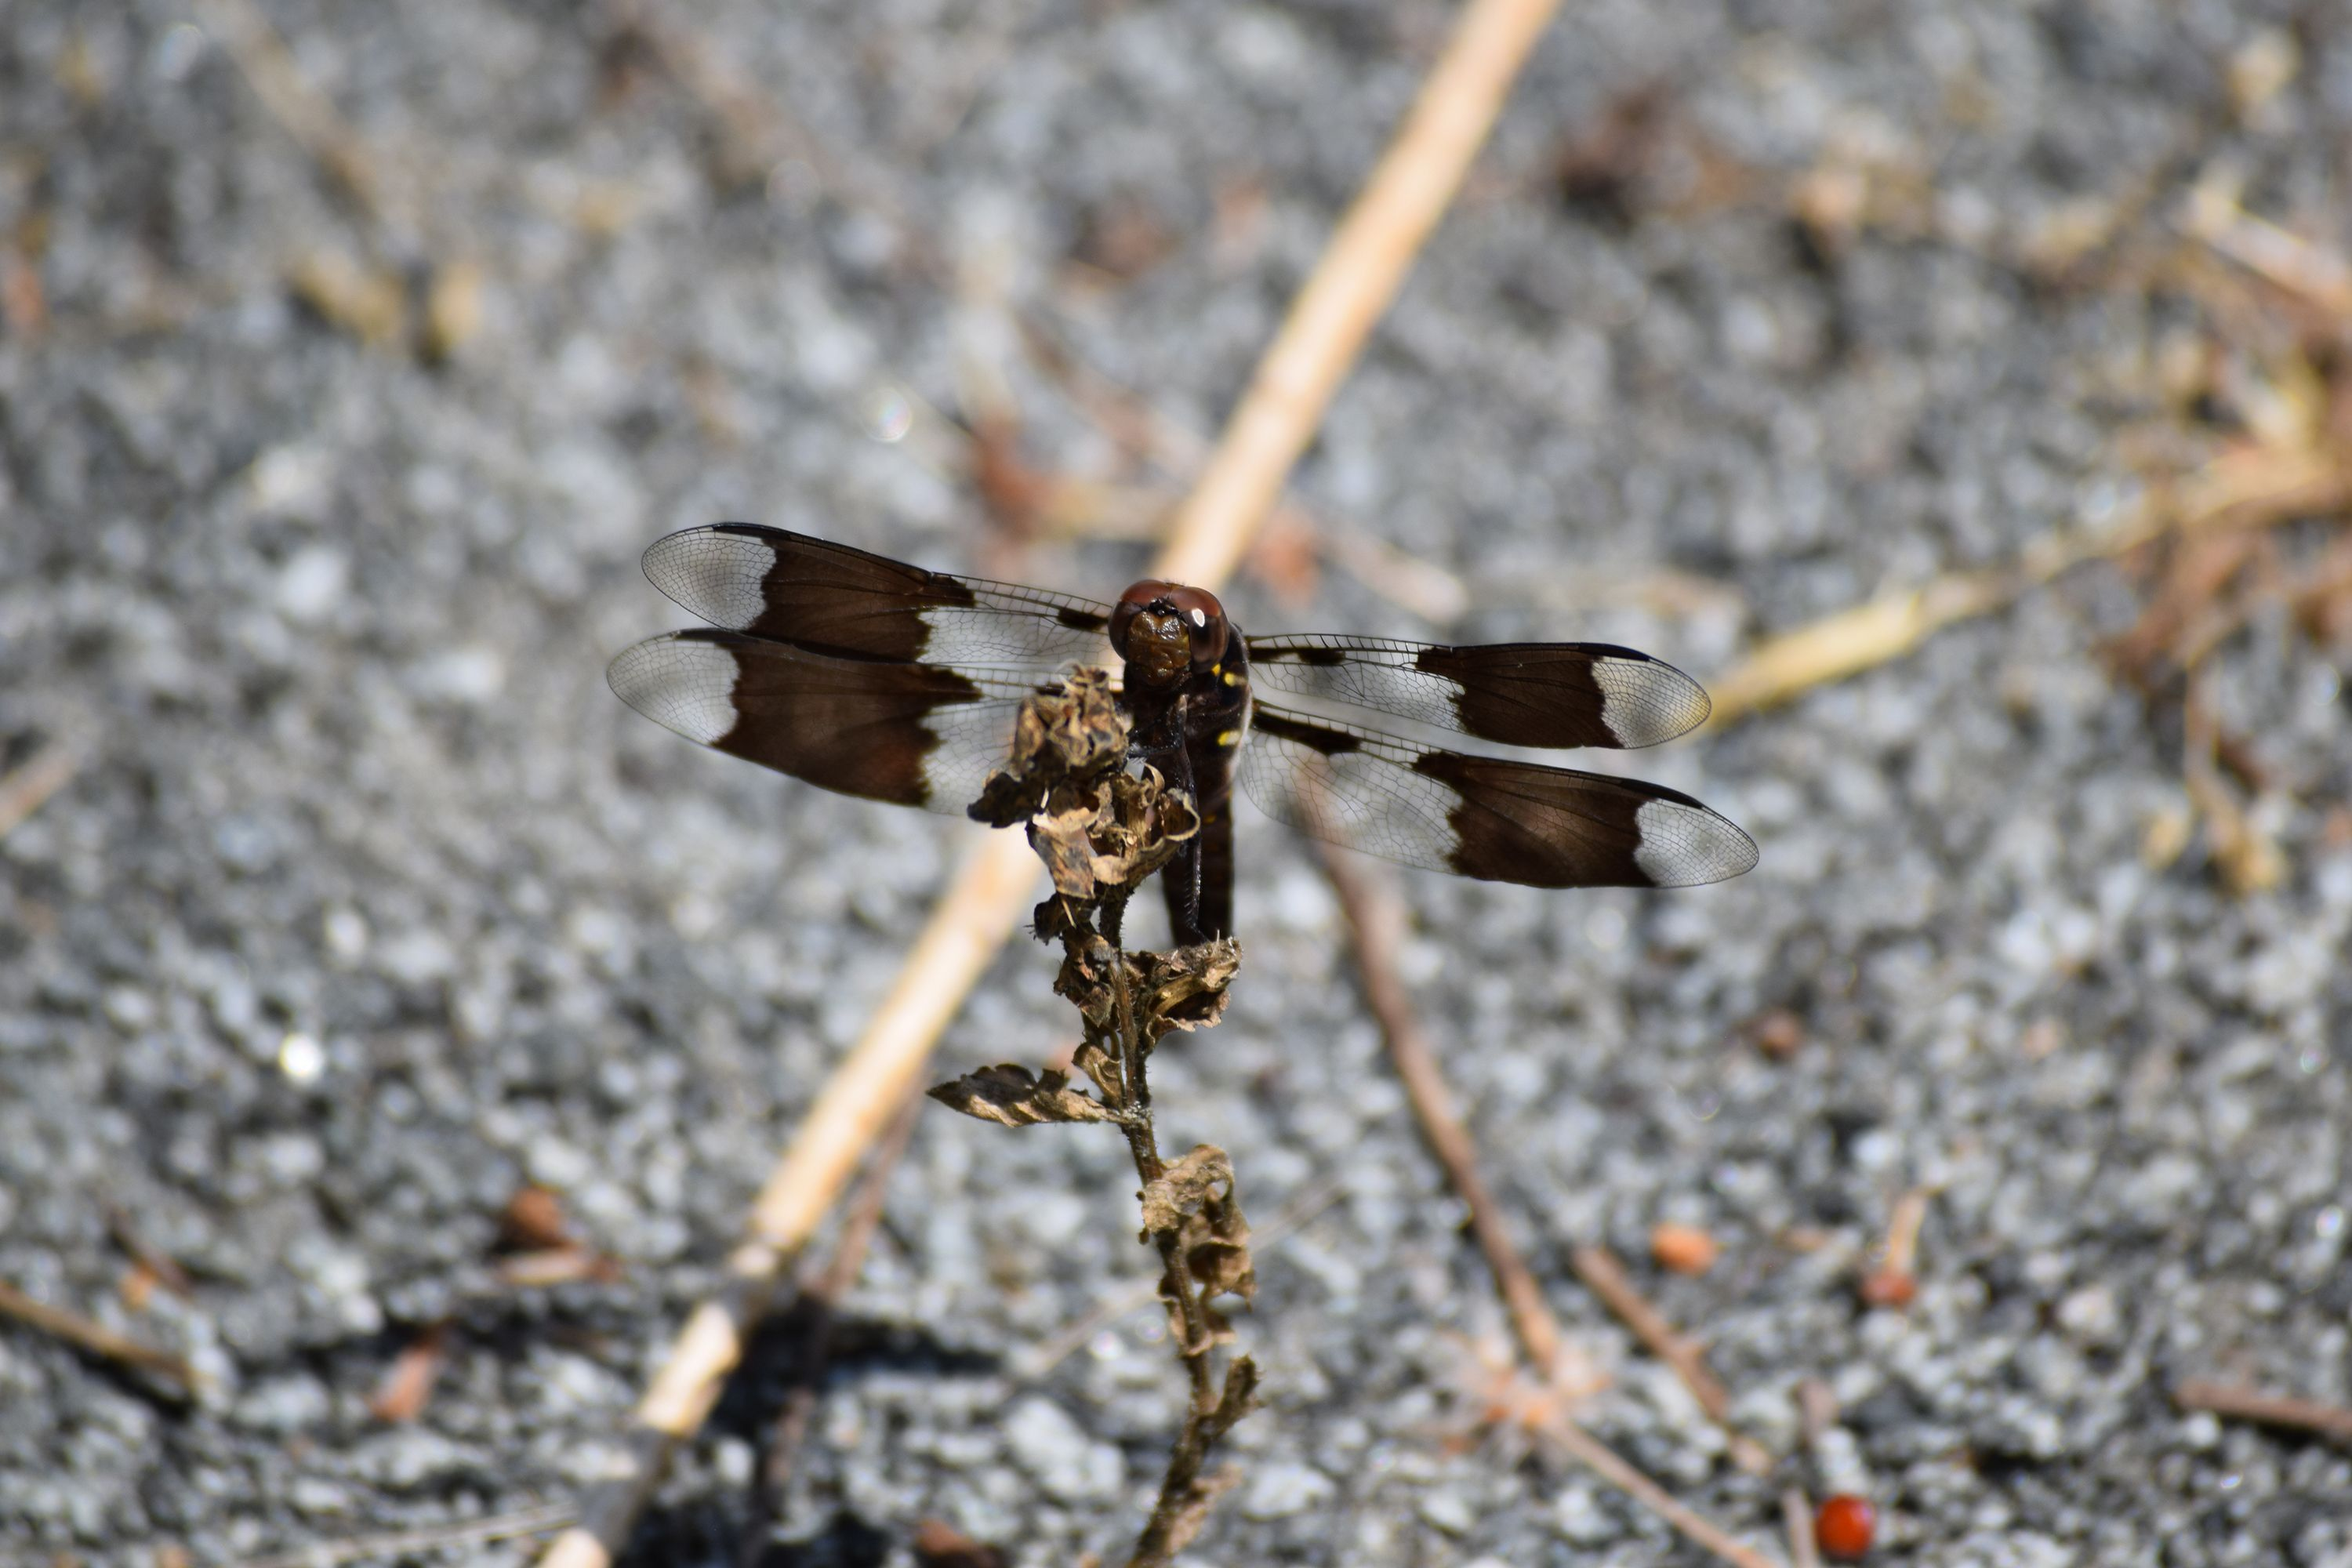 A common whitetail dragonfly perches on a withered plant. The dragonfly's body is dark brown. It has four translucent wings, each with a large brown marking.